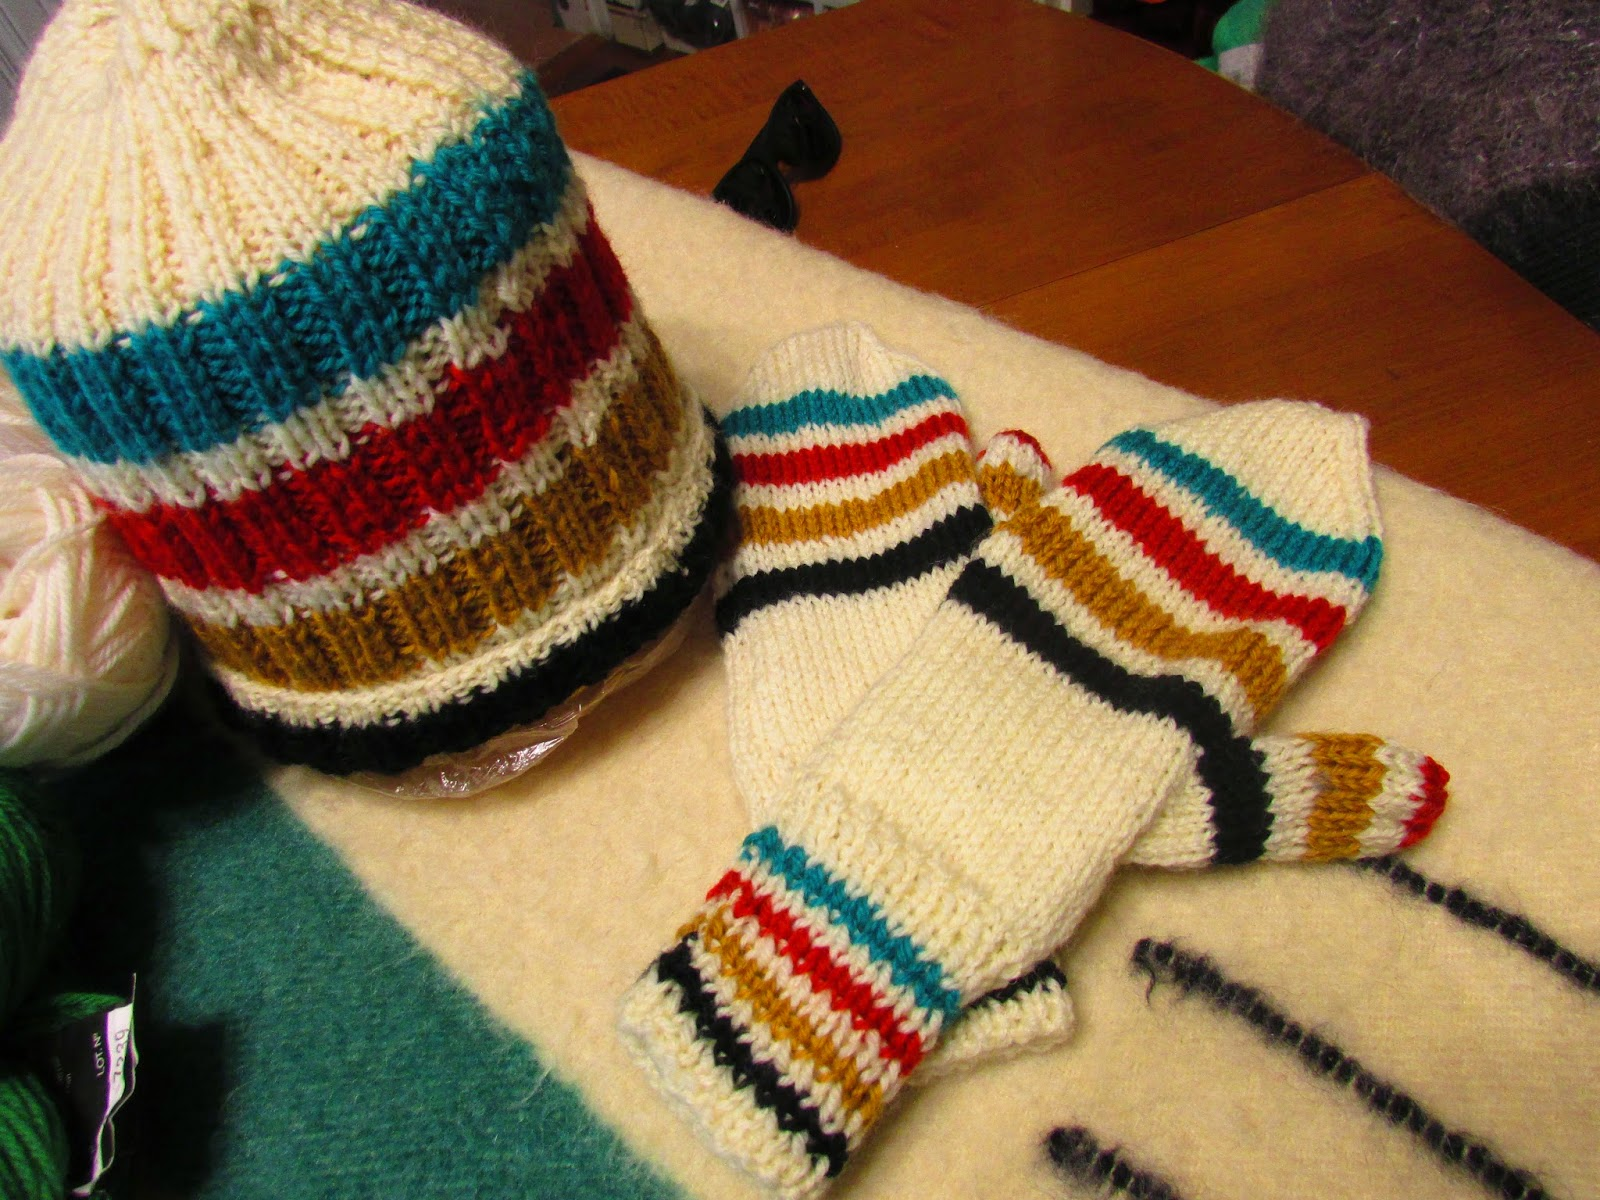 Knitting Pattern For Hudson Bay Blanket : MYRTLE STATION WOOL & FERGUSONS KNITTING: Hudsons Bay ...